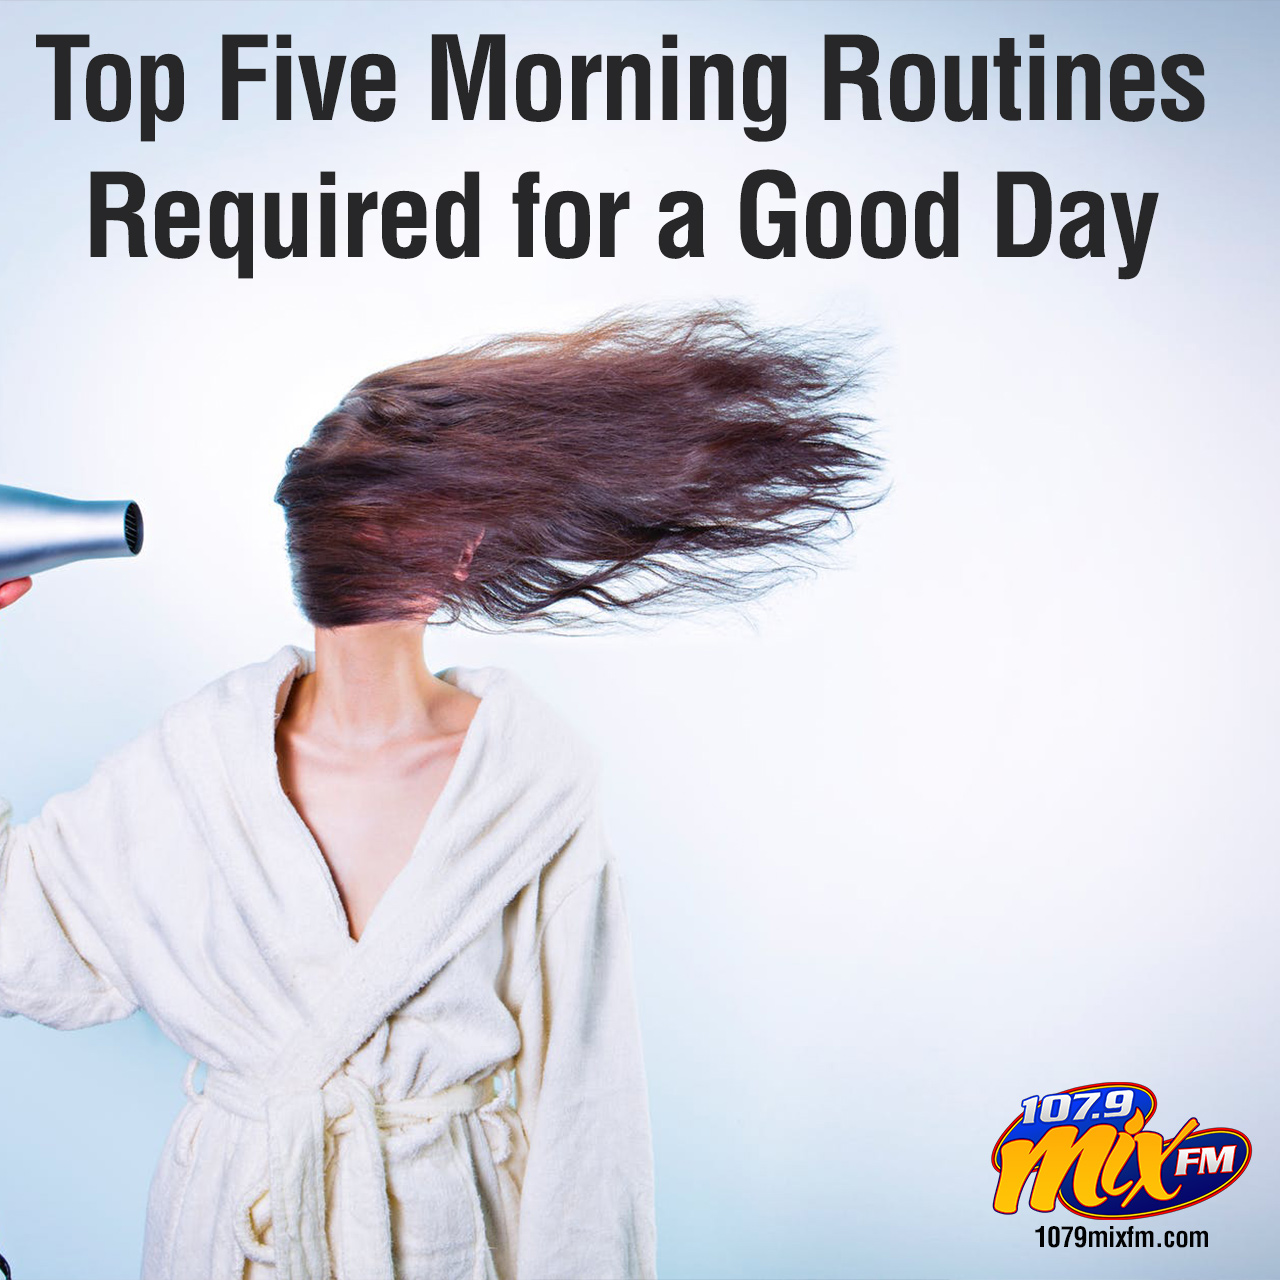 Top Five Morning Routines Required for a Good Day